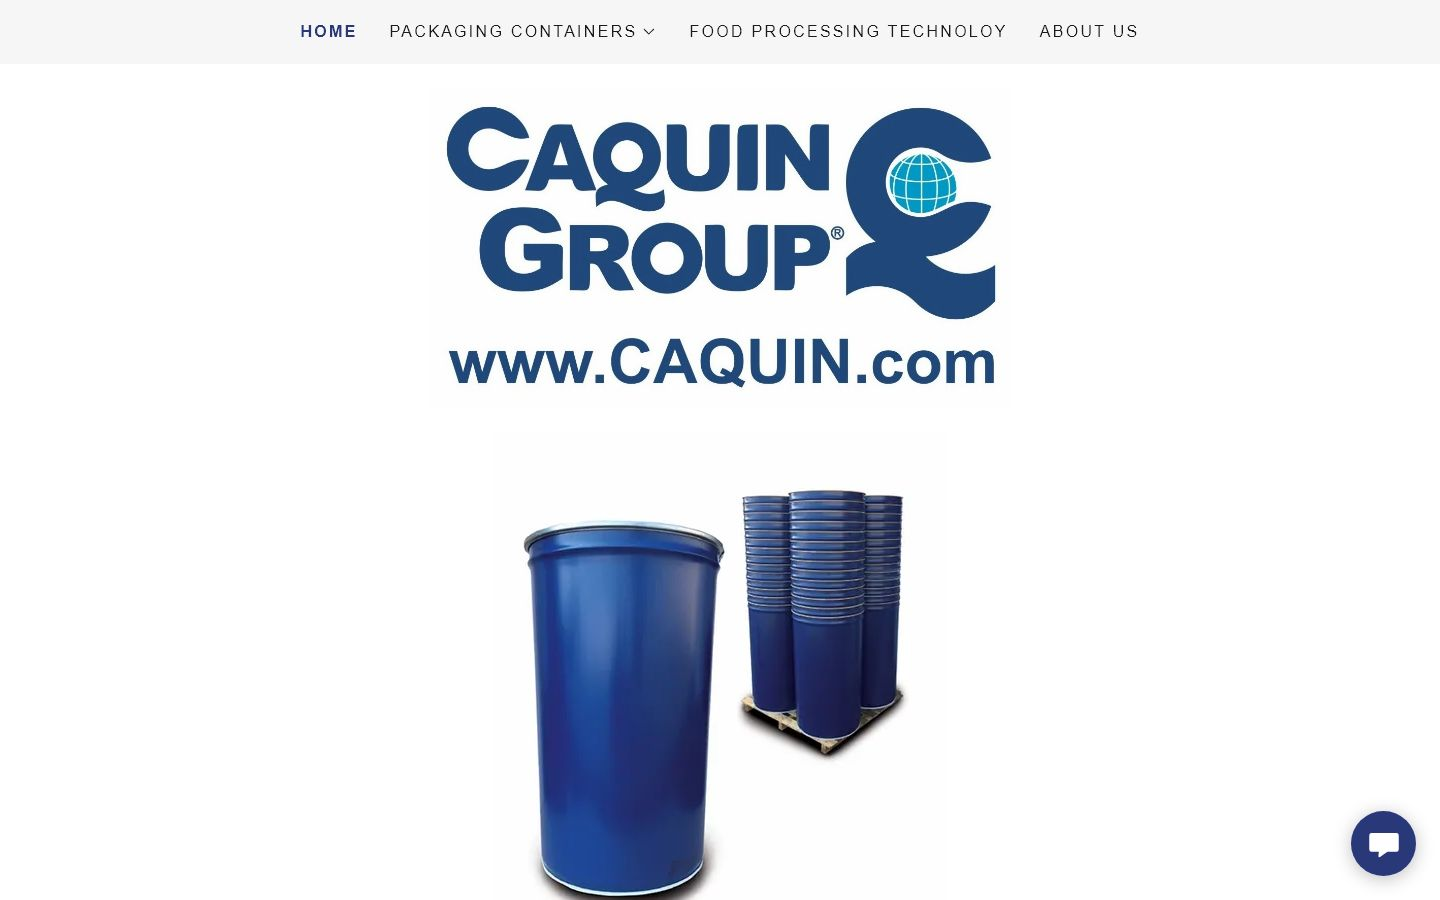 Caquin Group